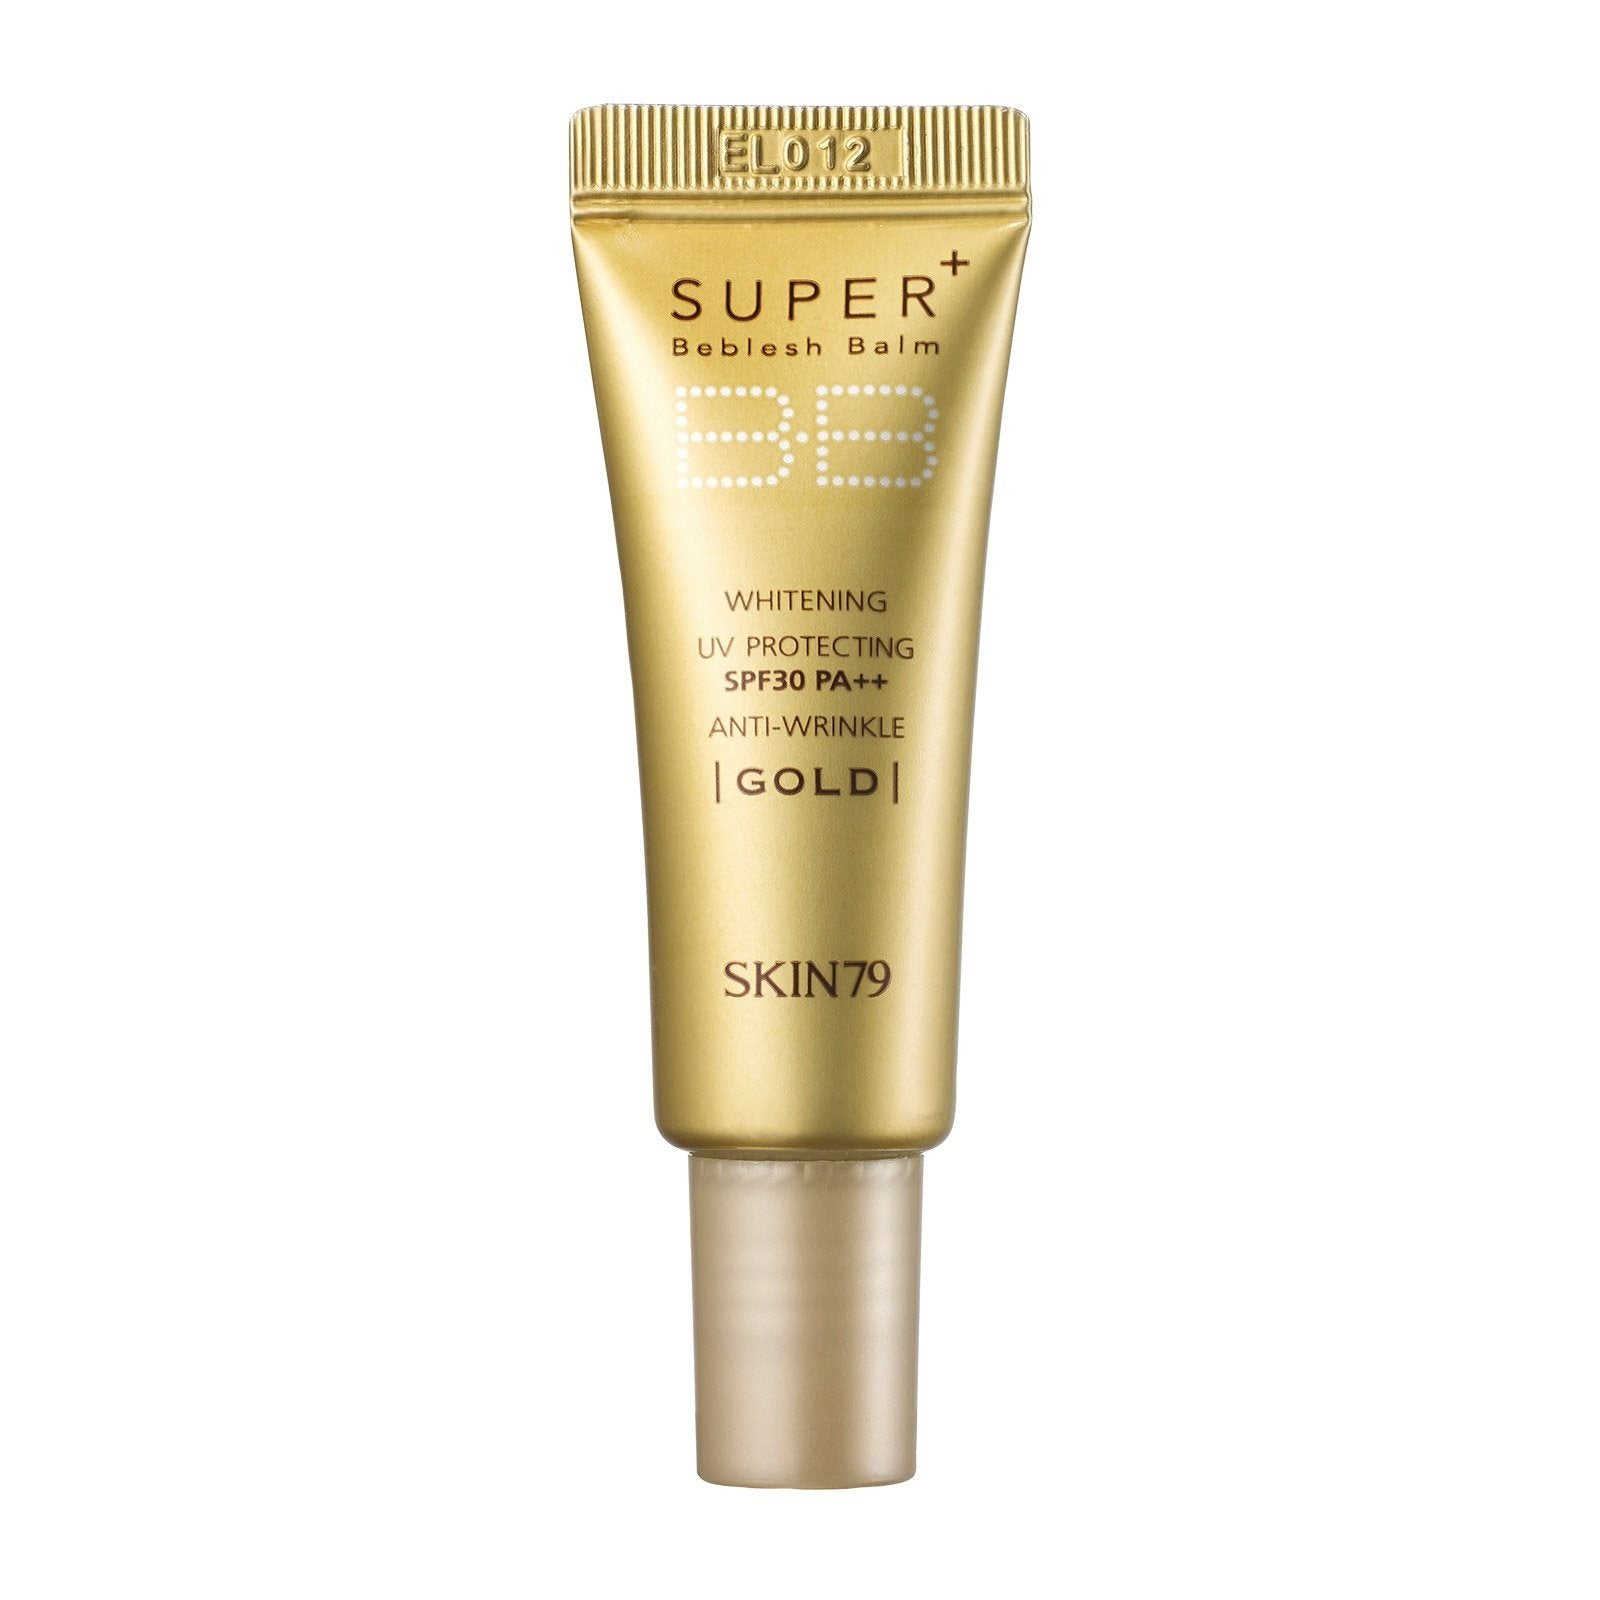 Health & Beauty > Personal Care > Cosmetics > Makeup > Face Makeup > Foundations & Concealers - MINI Krem BB VIP Gold Super Plus Beblesh Balm Cream (mini Size) 7 G